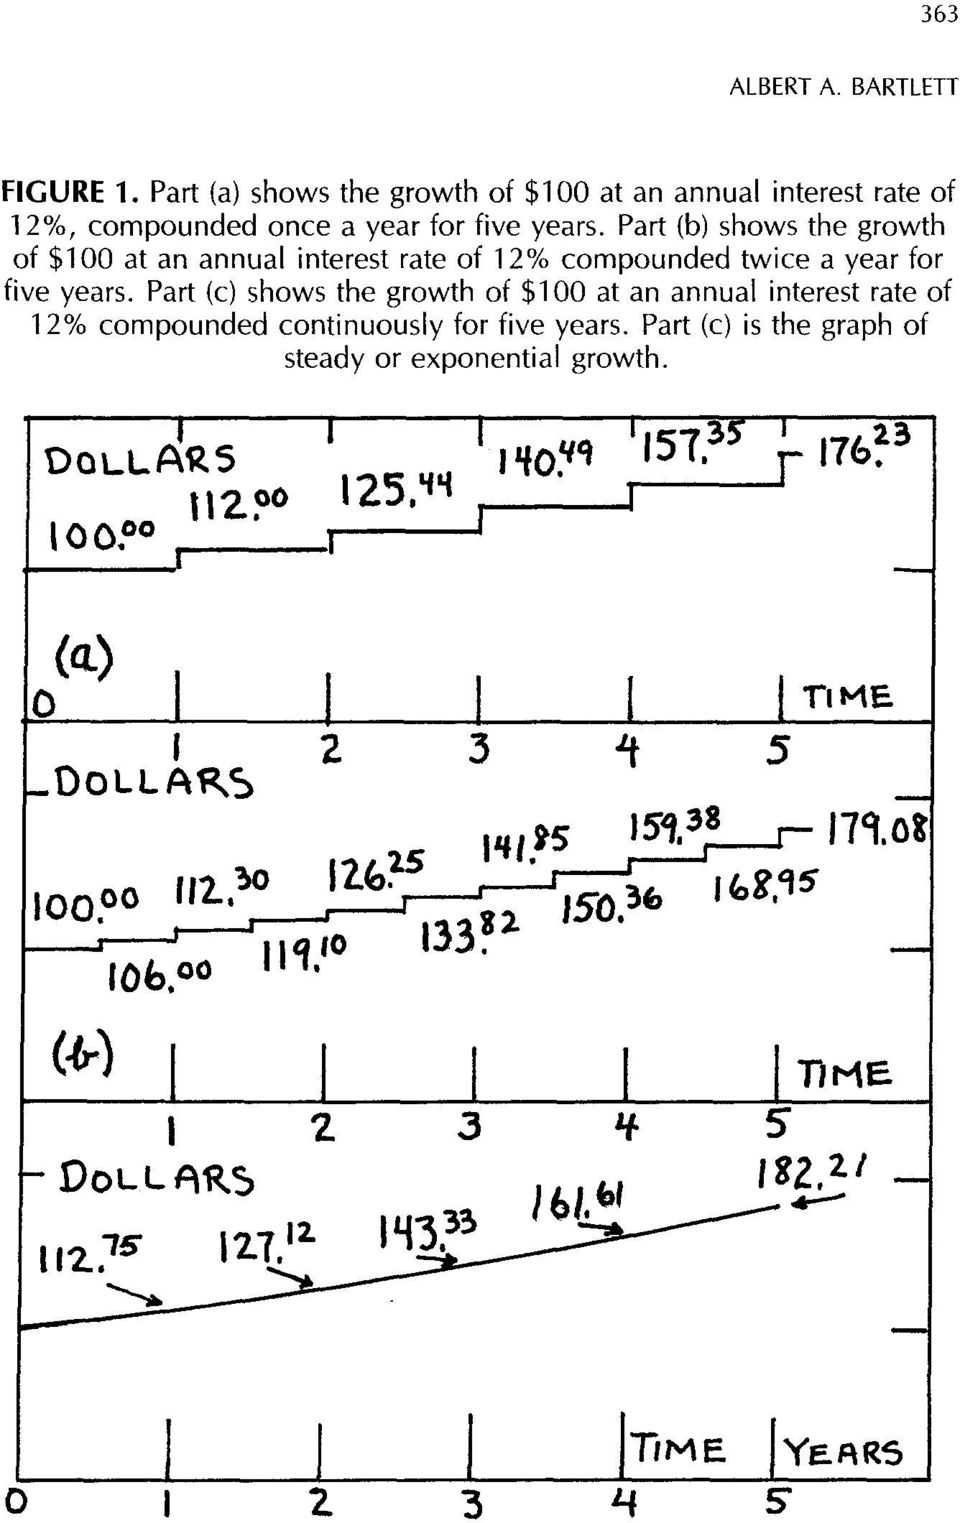 Part (c) shows the growth of $100 at an annual interest rate of 12% compounded continuously for five years.